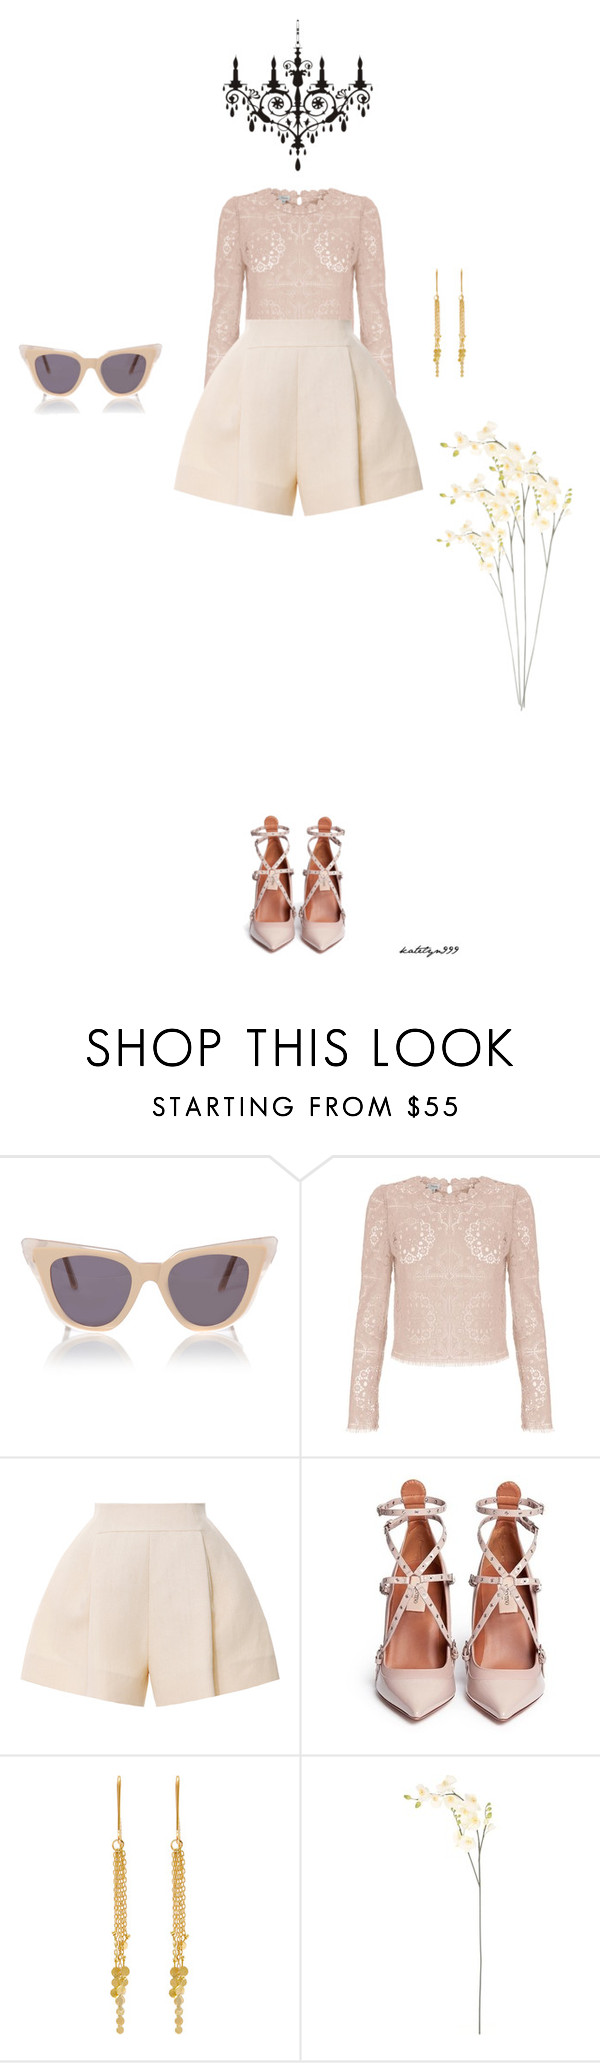 """""""Simple pleasures..."""" by katelyn999 ❤ liked on Polyvore featuring Illesteva, Temperley London, Delpozo, Valentino, Sia Taylor and Sia"""